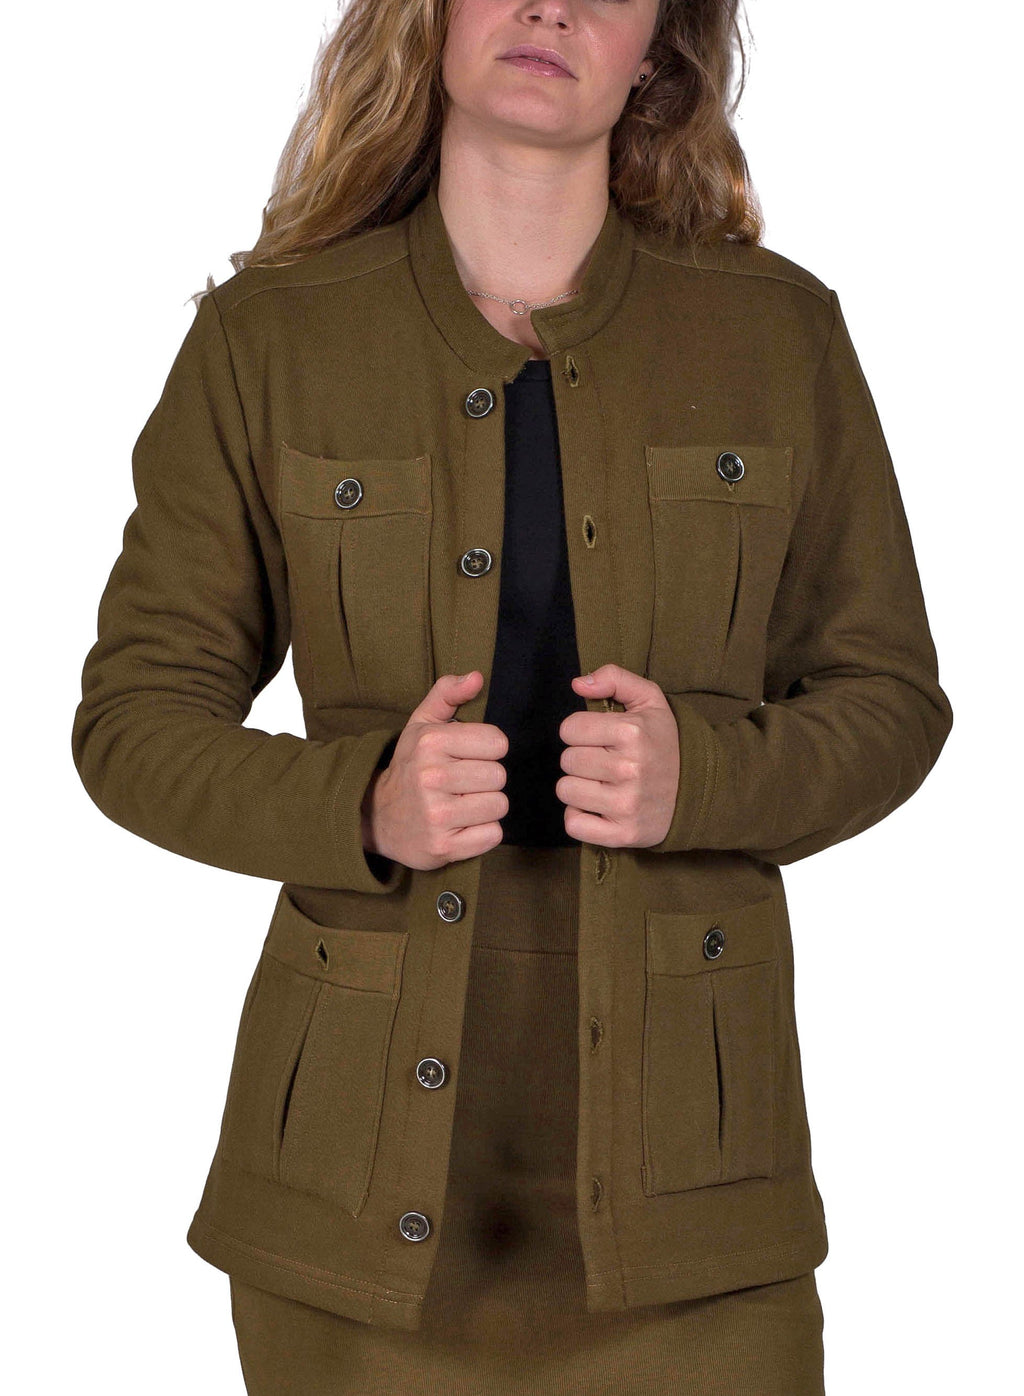 Women's Organic Cotton Field Jacket - Dark Olive - USA Made - Asheville Apparel